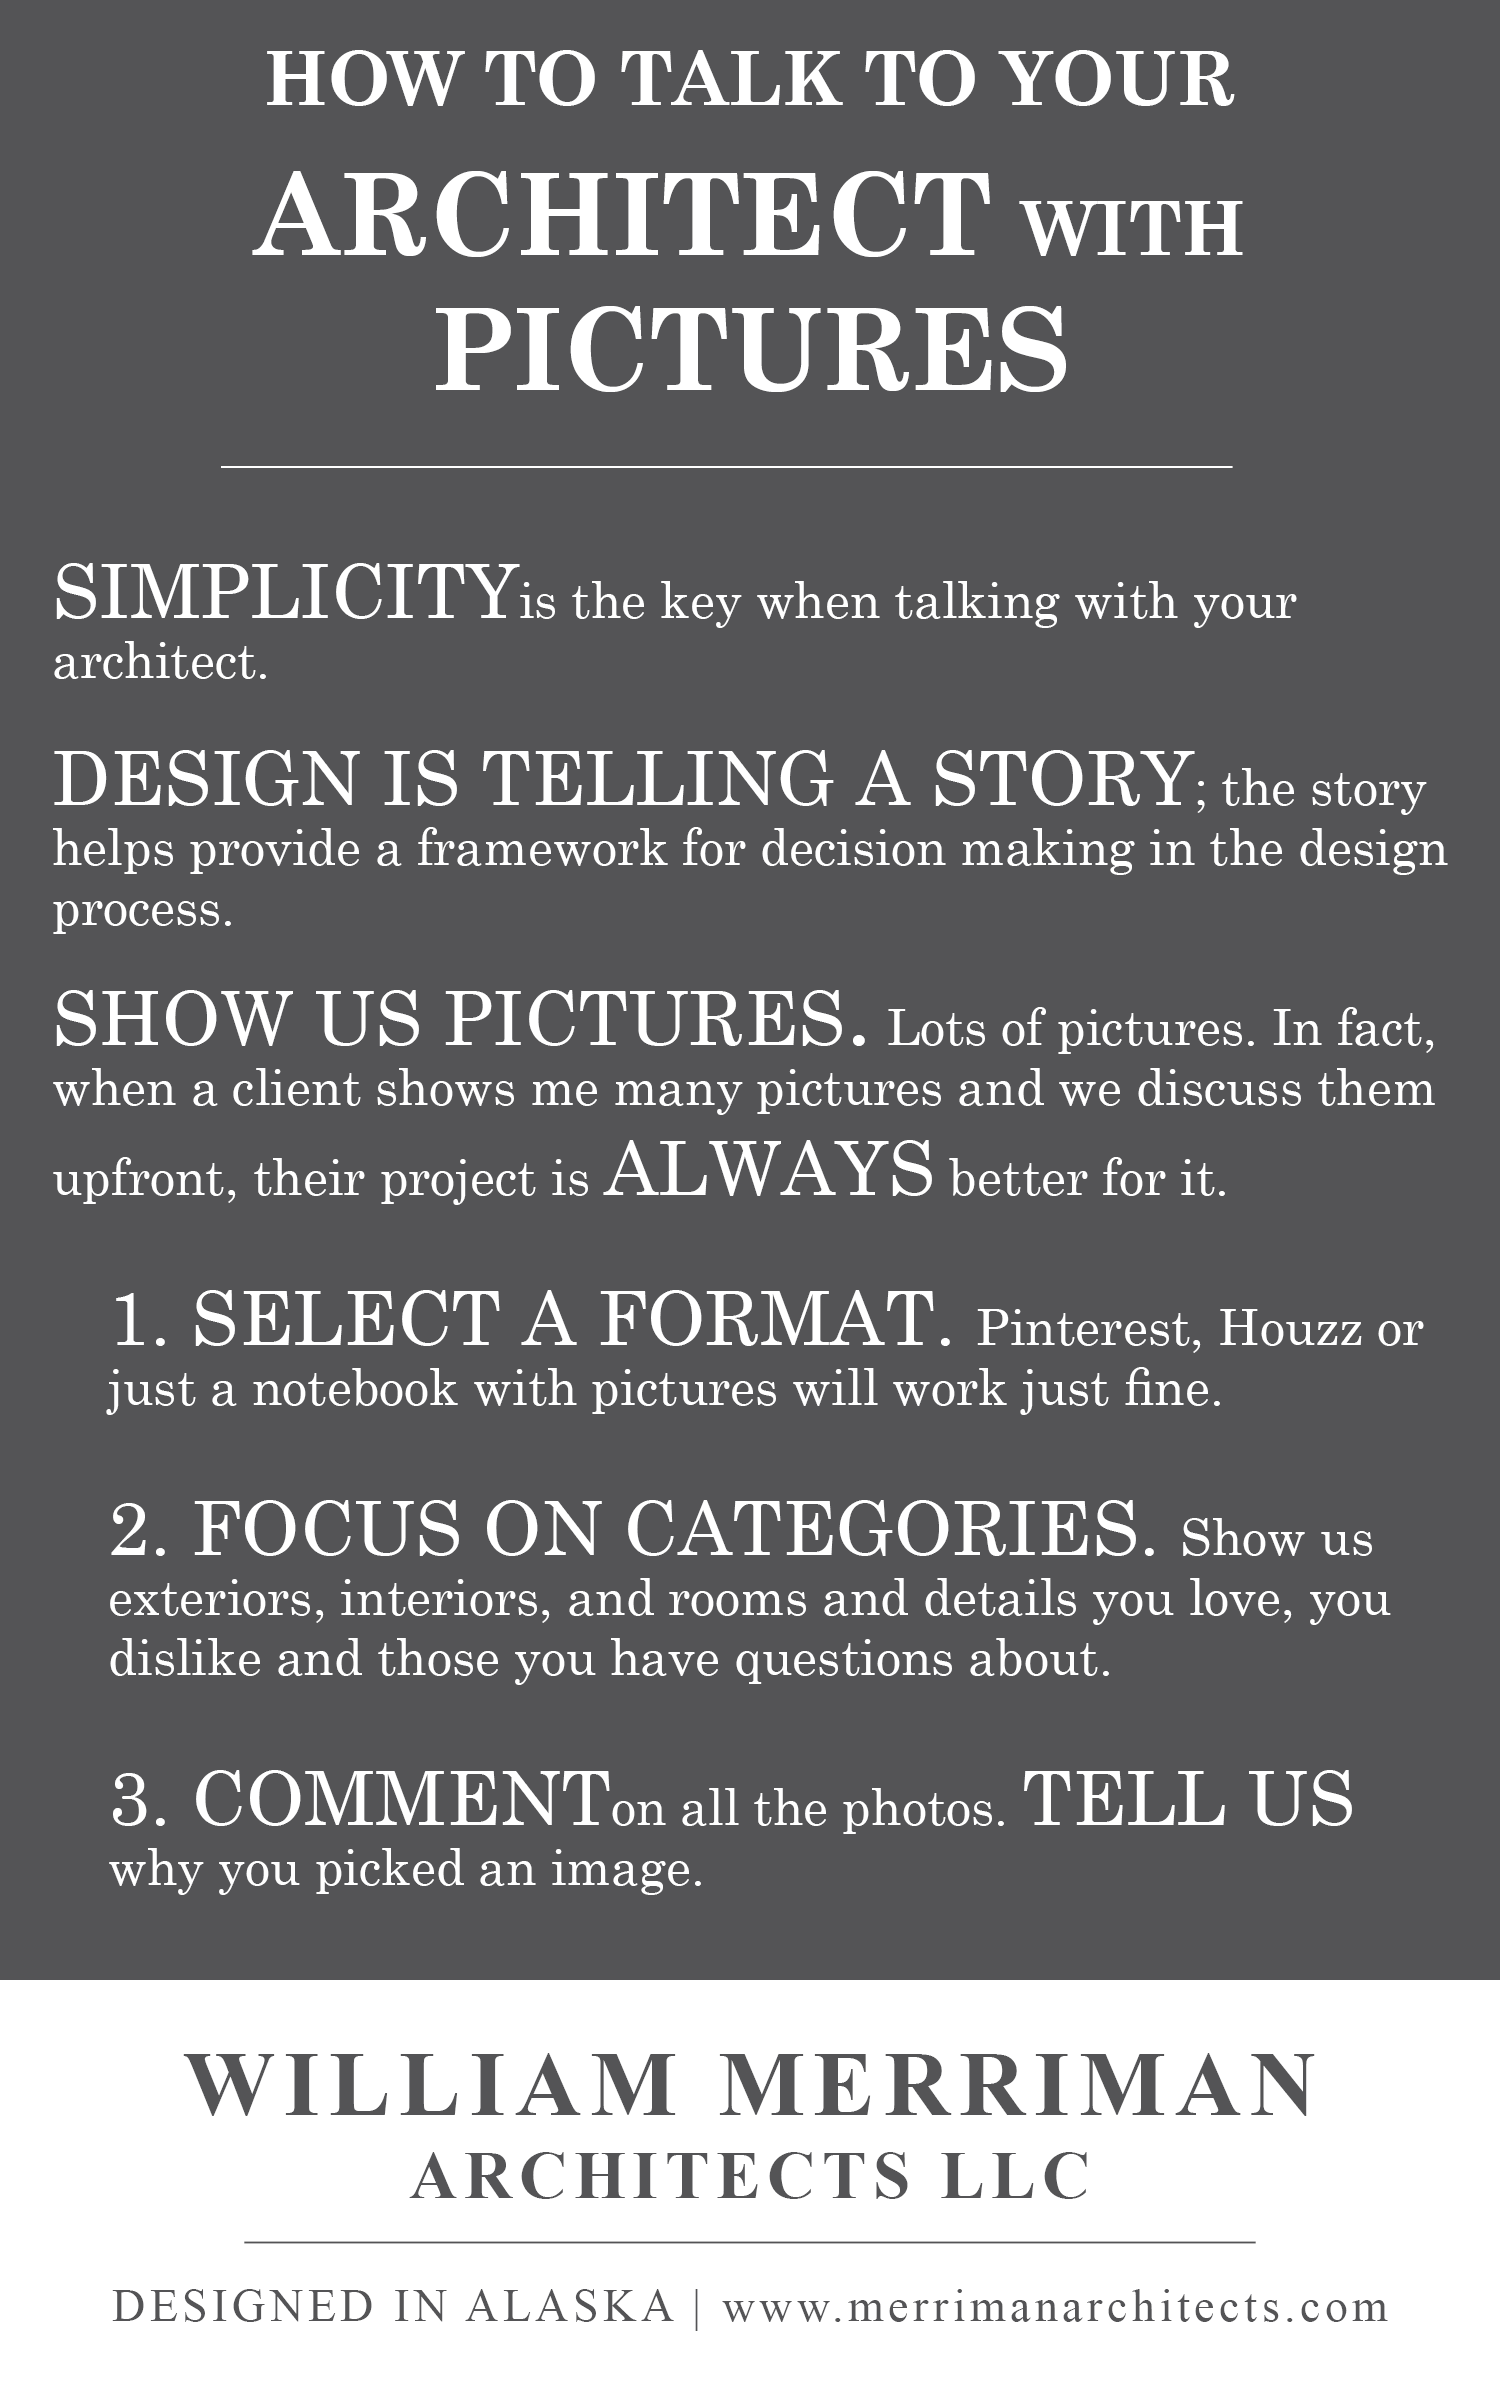 How to talk to an Architect with Pictures.png